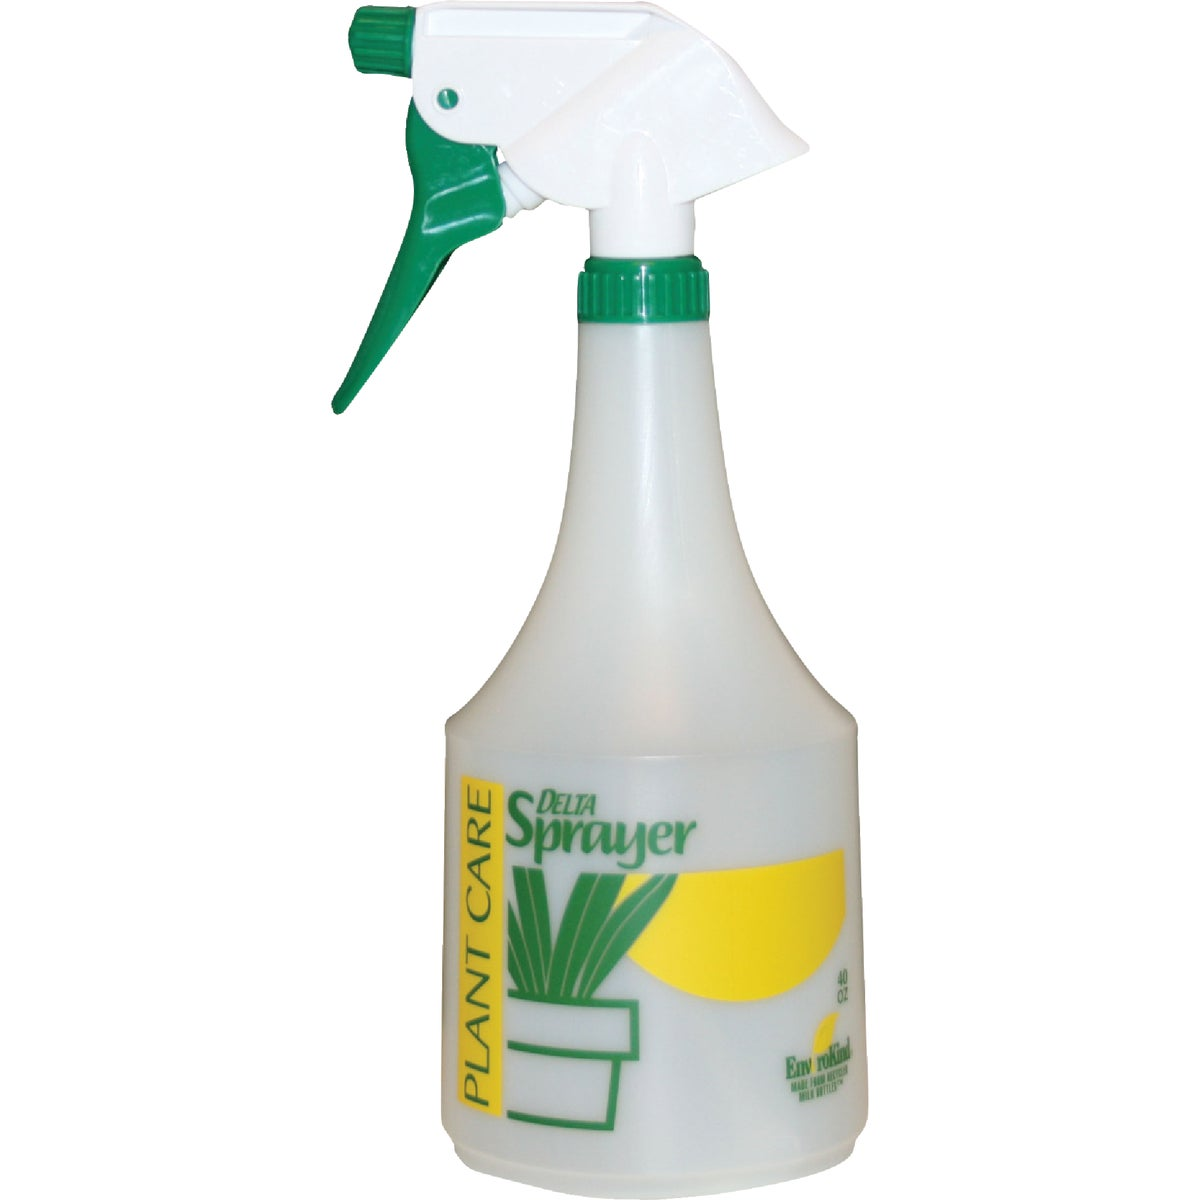 PROF SPRAY BOTTLE